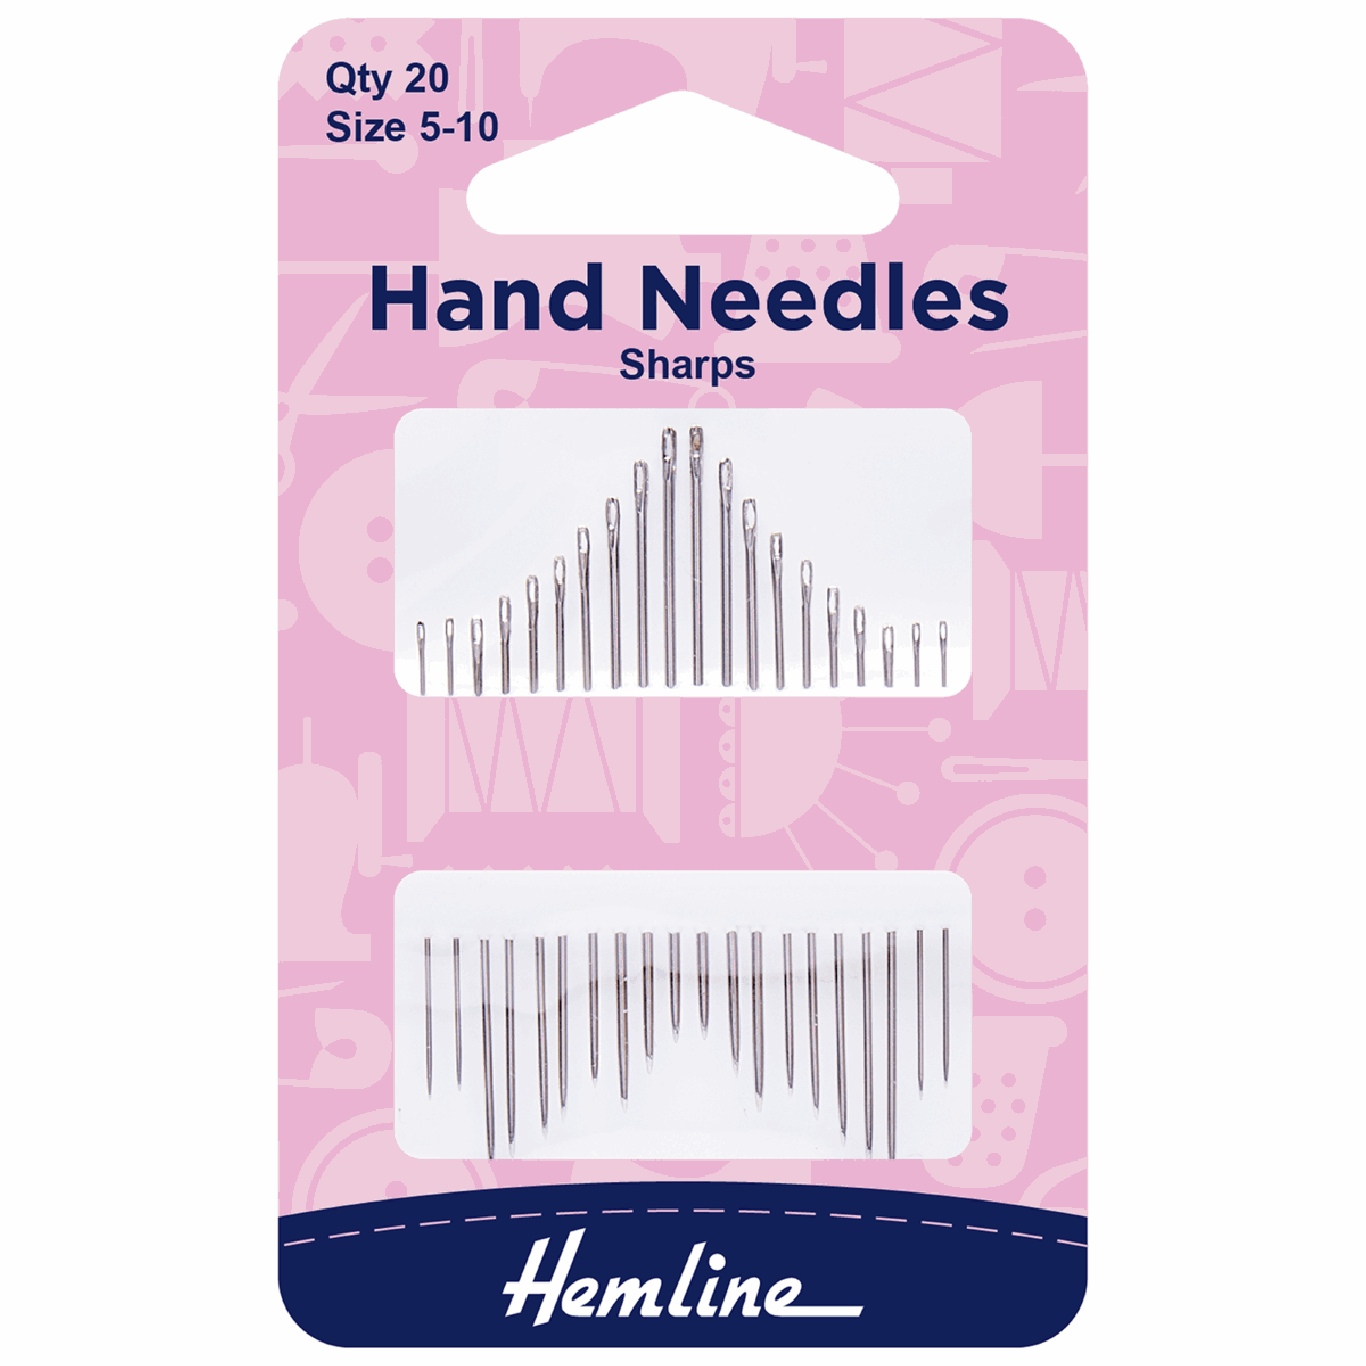 Image of Sharps Hand Sewing Needles | Size 5-10